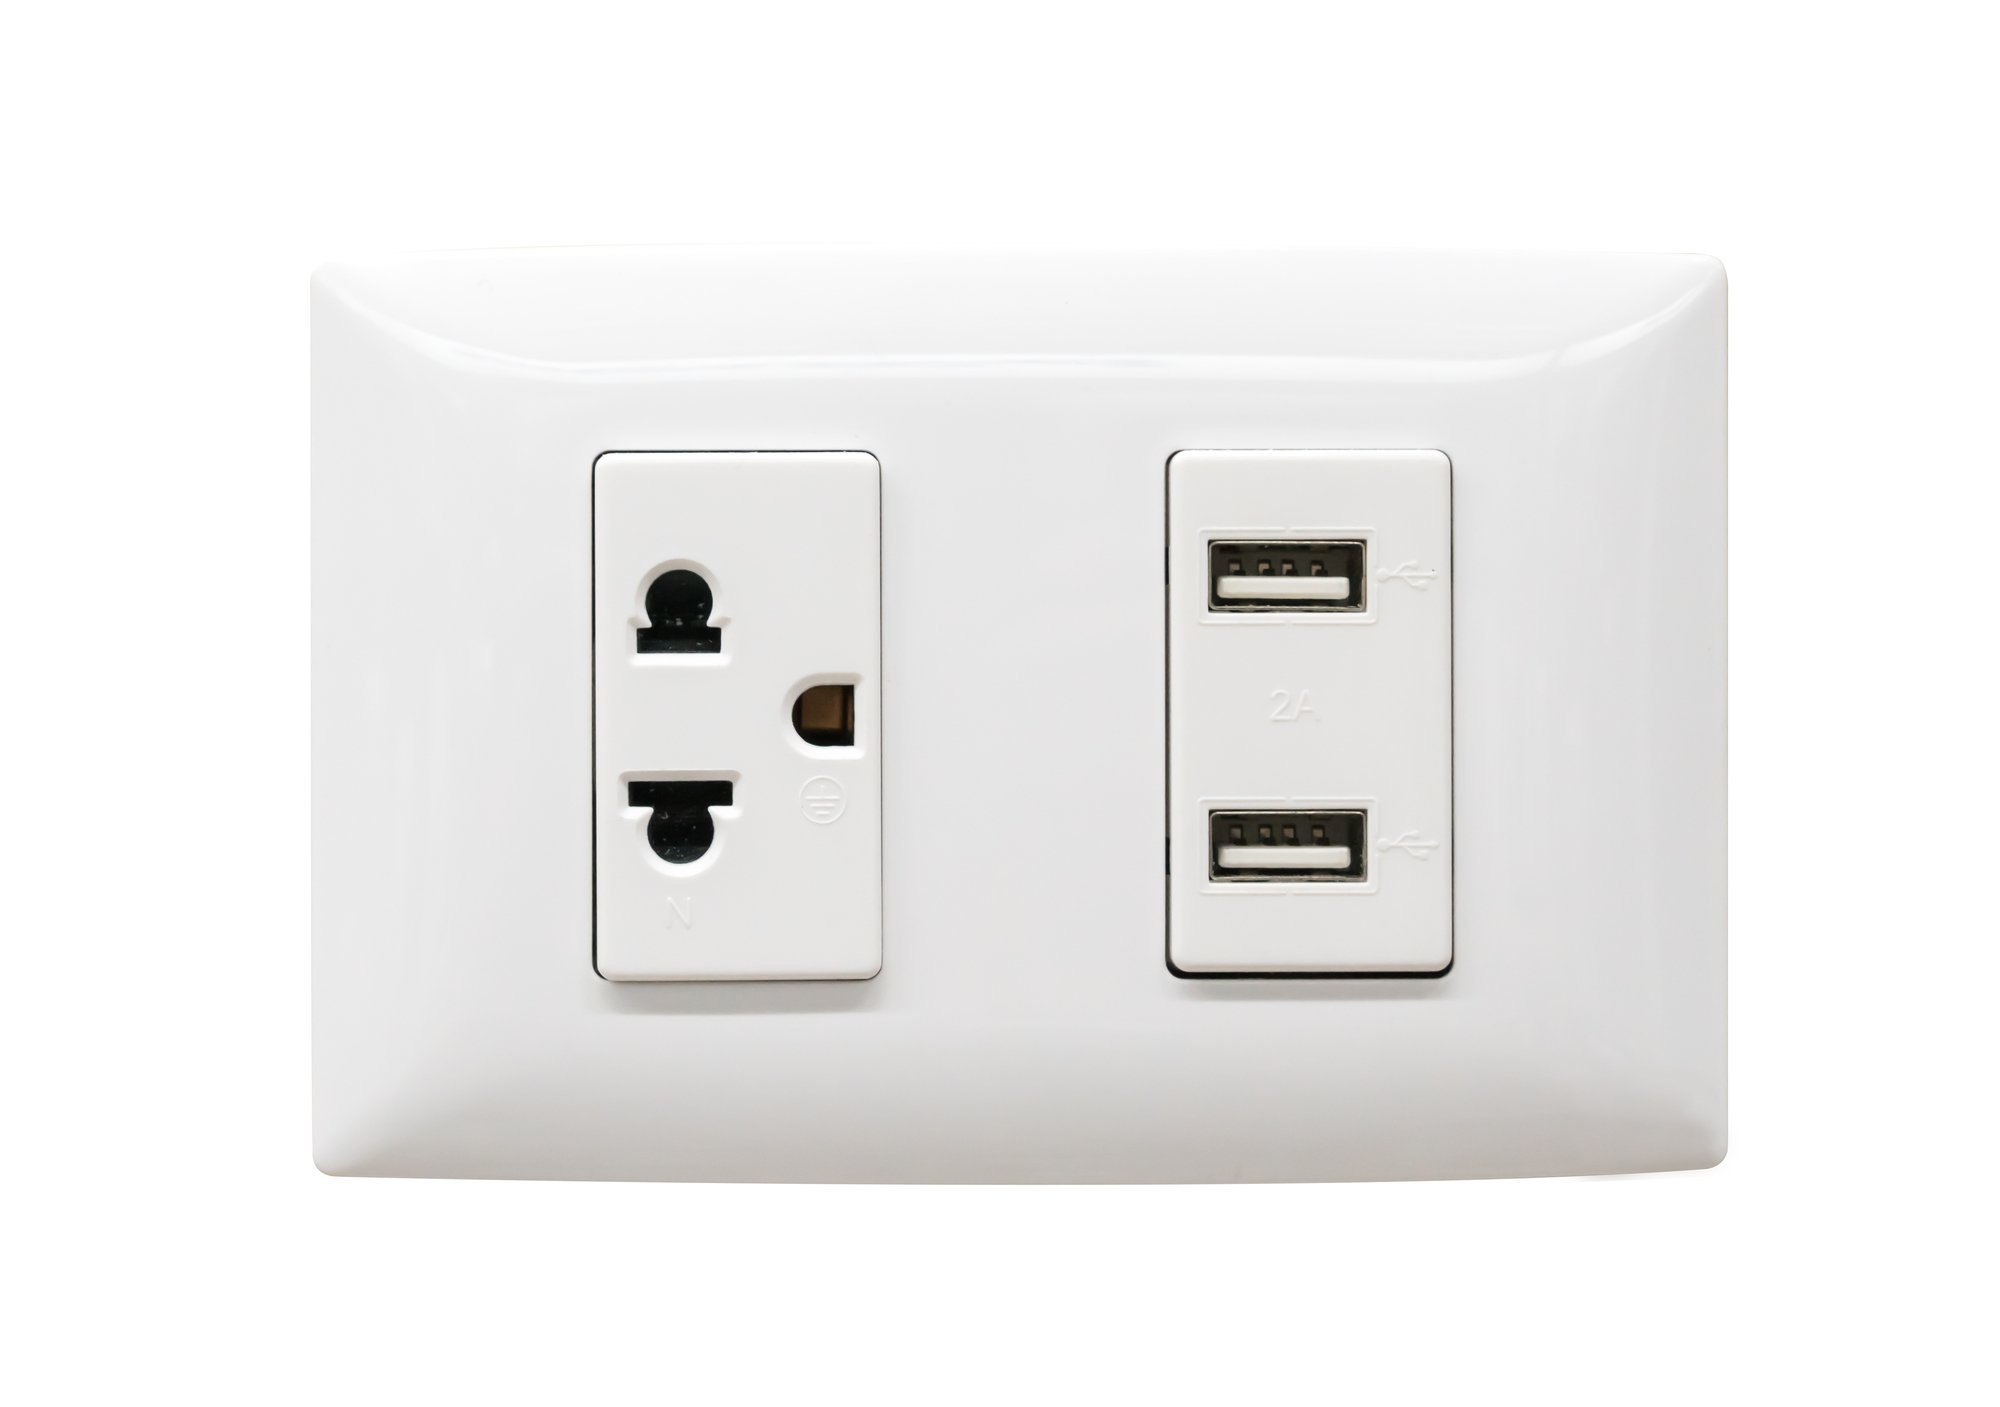 White electrical plug and USB wall outlet